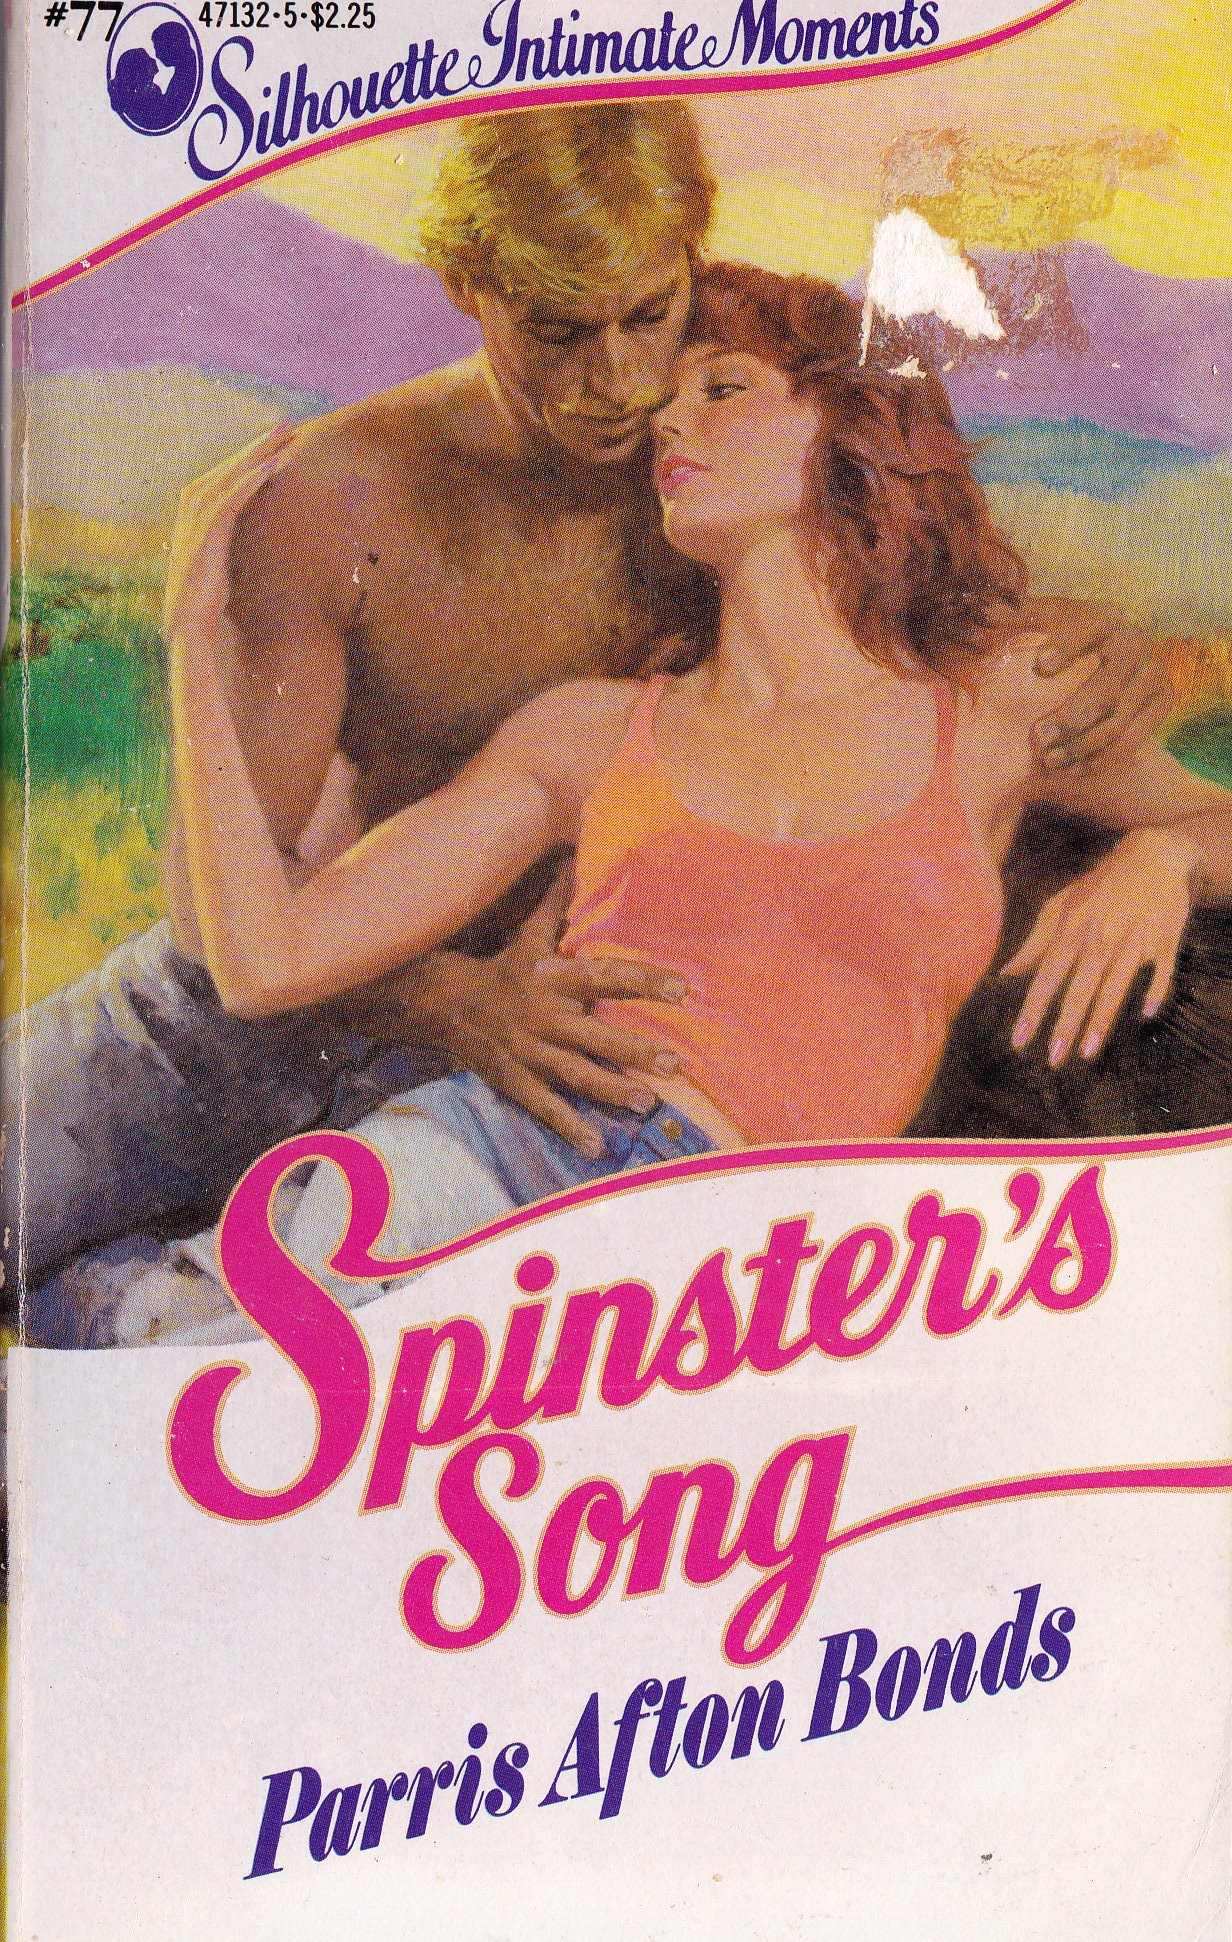 Spinster's Song romance cover